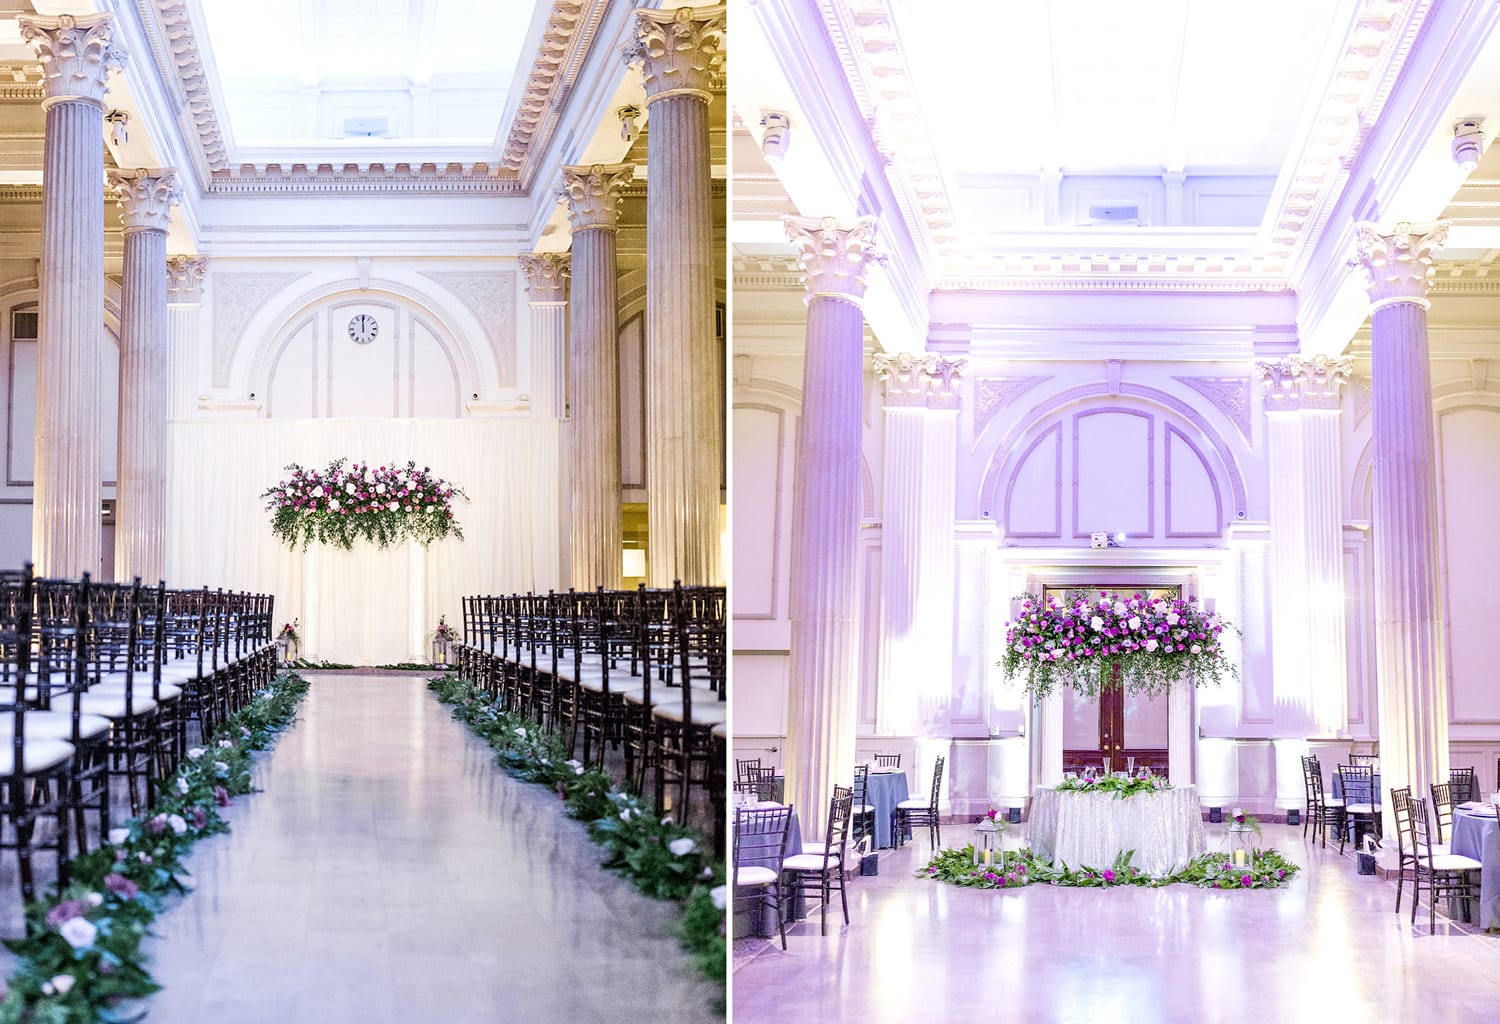 Host your ceremony and reception in the same location | Wedding Cost Saving Tips From The Treasury on the Plaza